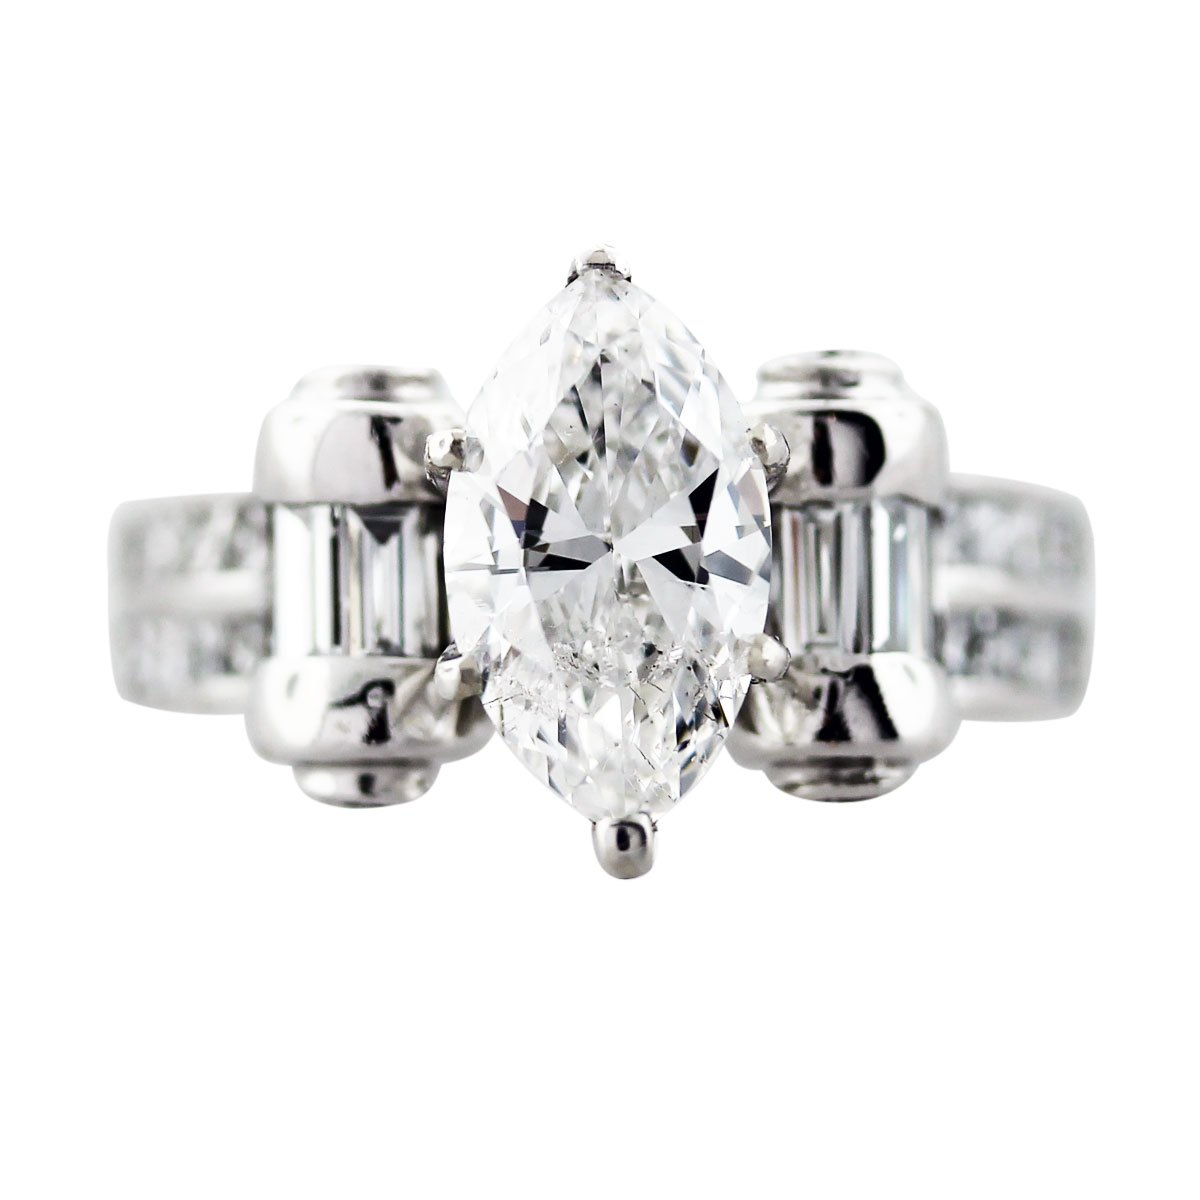 162 Carat Marquise Cut Diamond Engagement Ring 18K White Gold